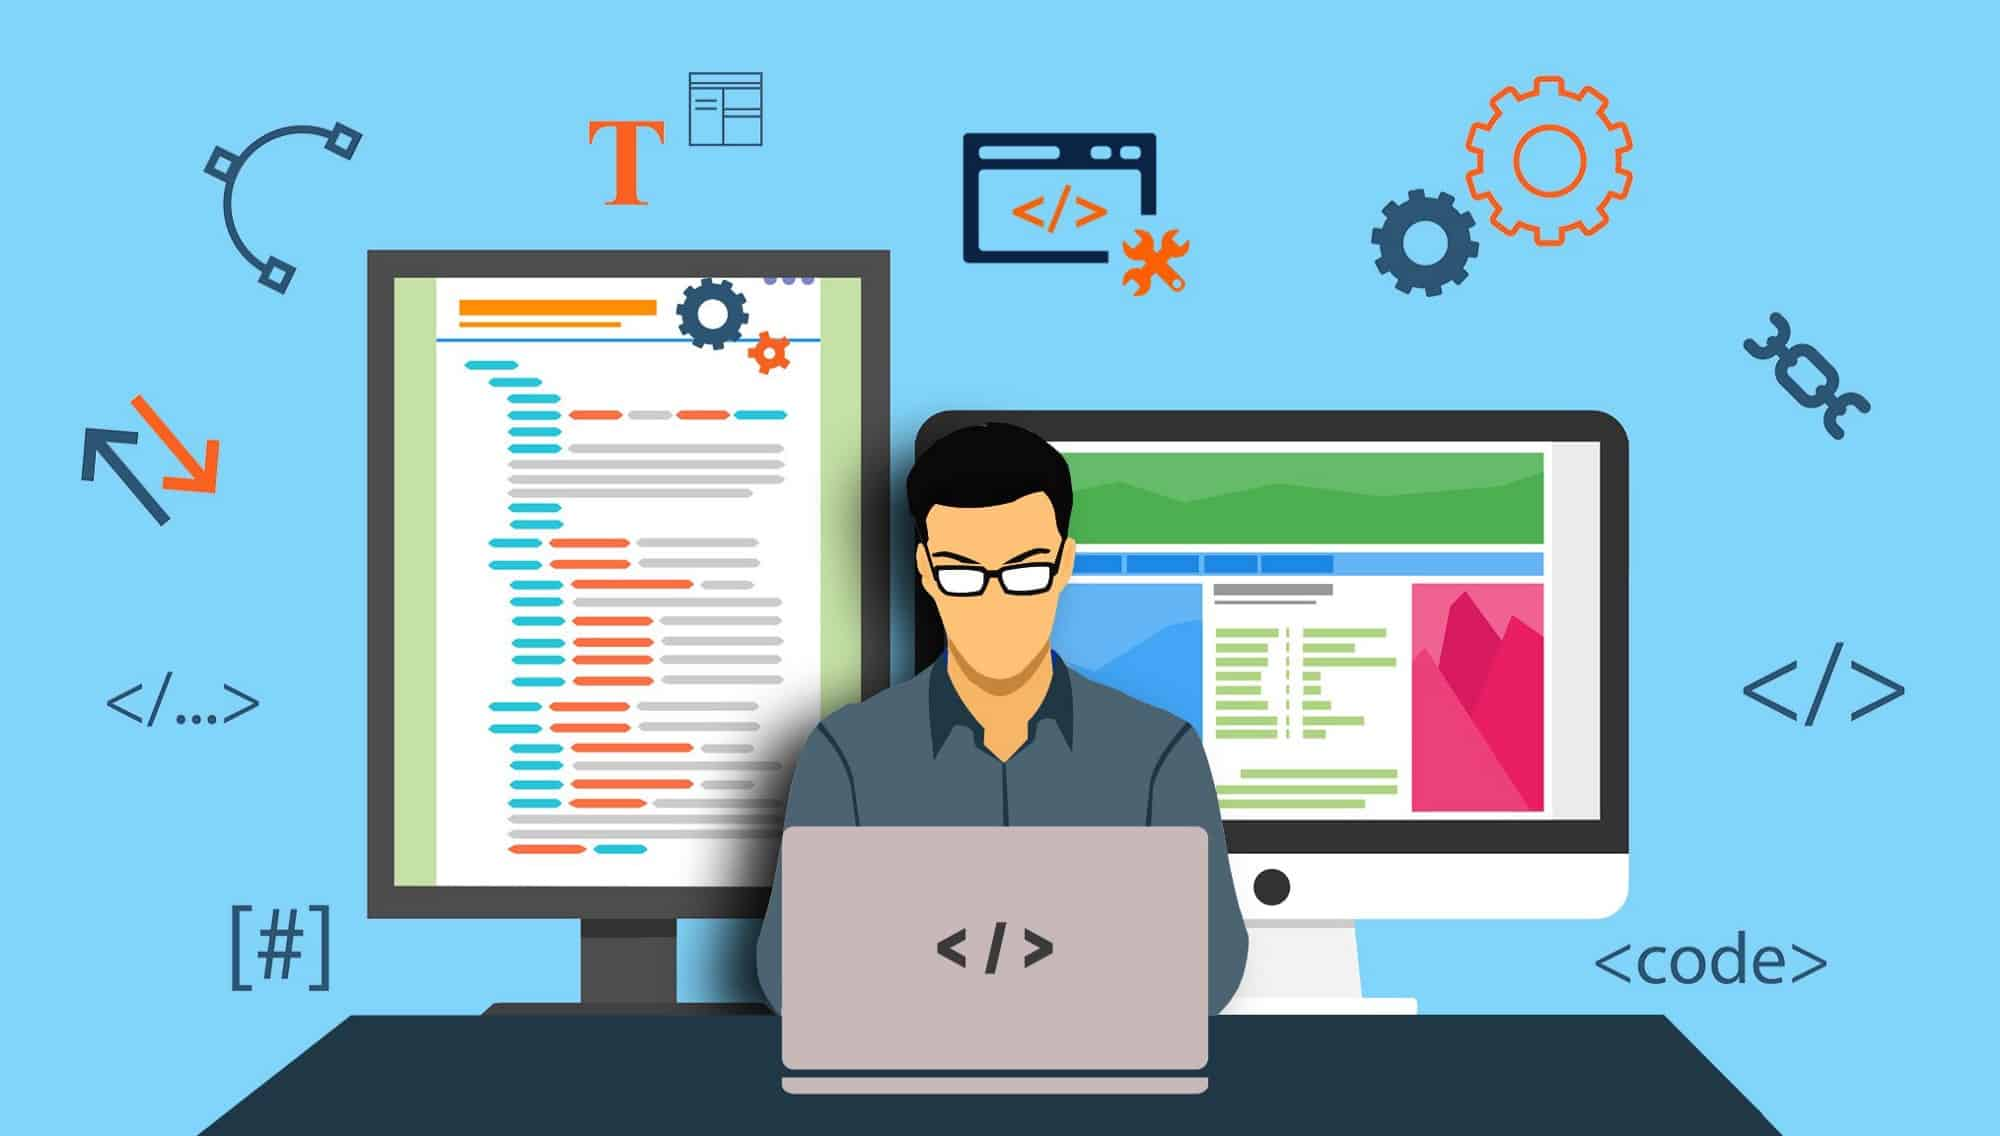 Web Developer - highest paying computer science jobs